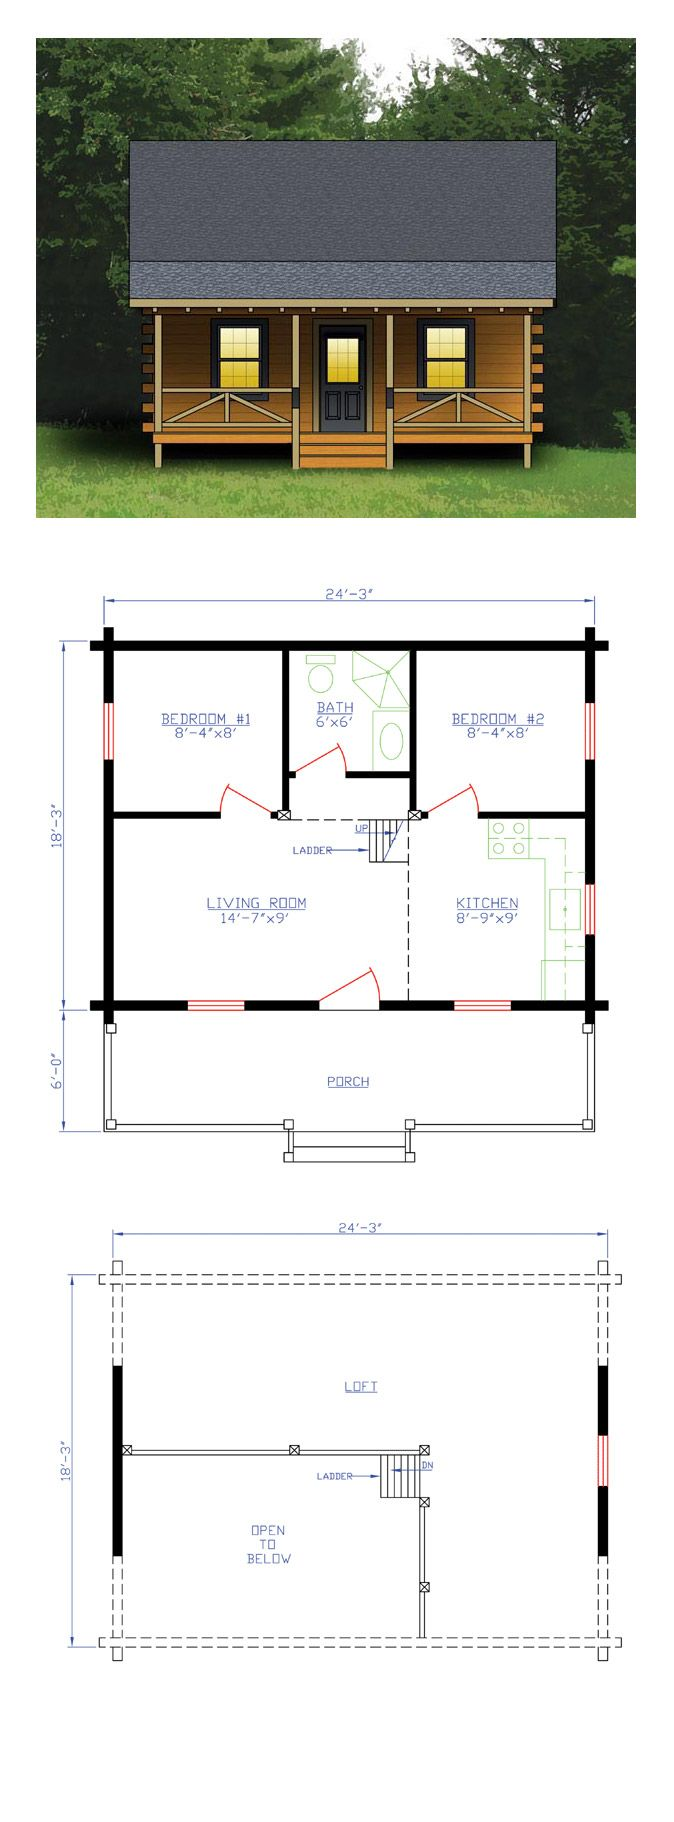 85 Best house plans I love images | House plans, Small house ...